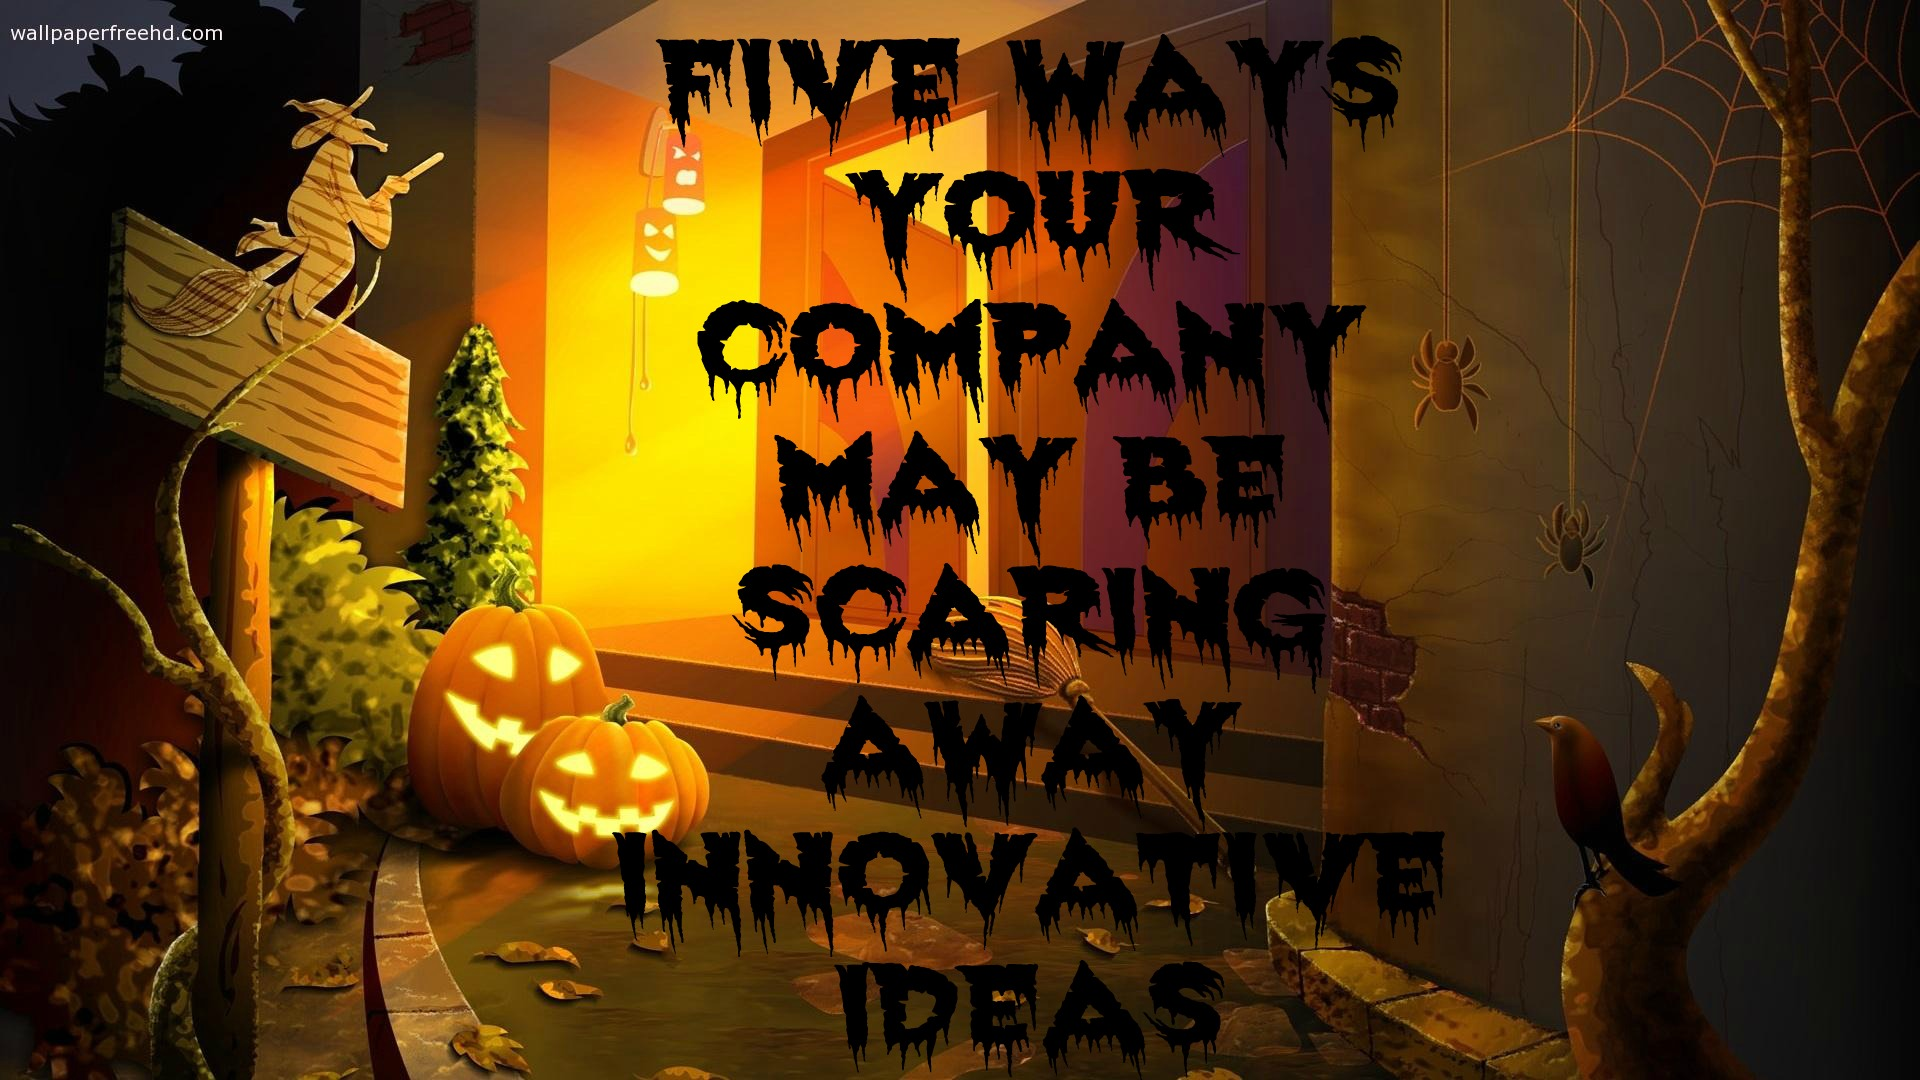 Trick or treat five ways your company may be scaring away trick or treat five ways your company may be scaring away innovative ideas voltagebd Images